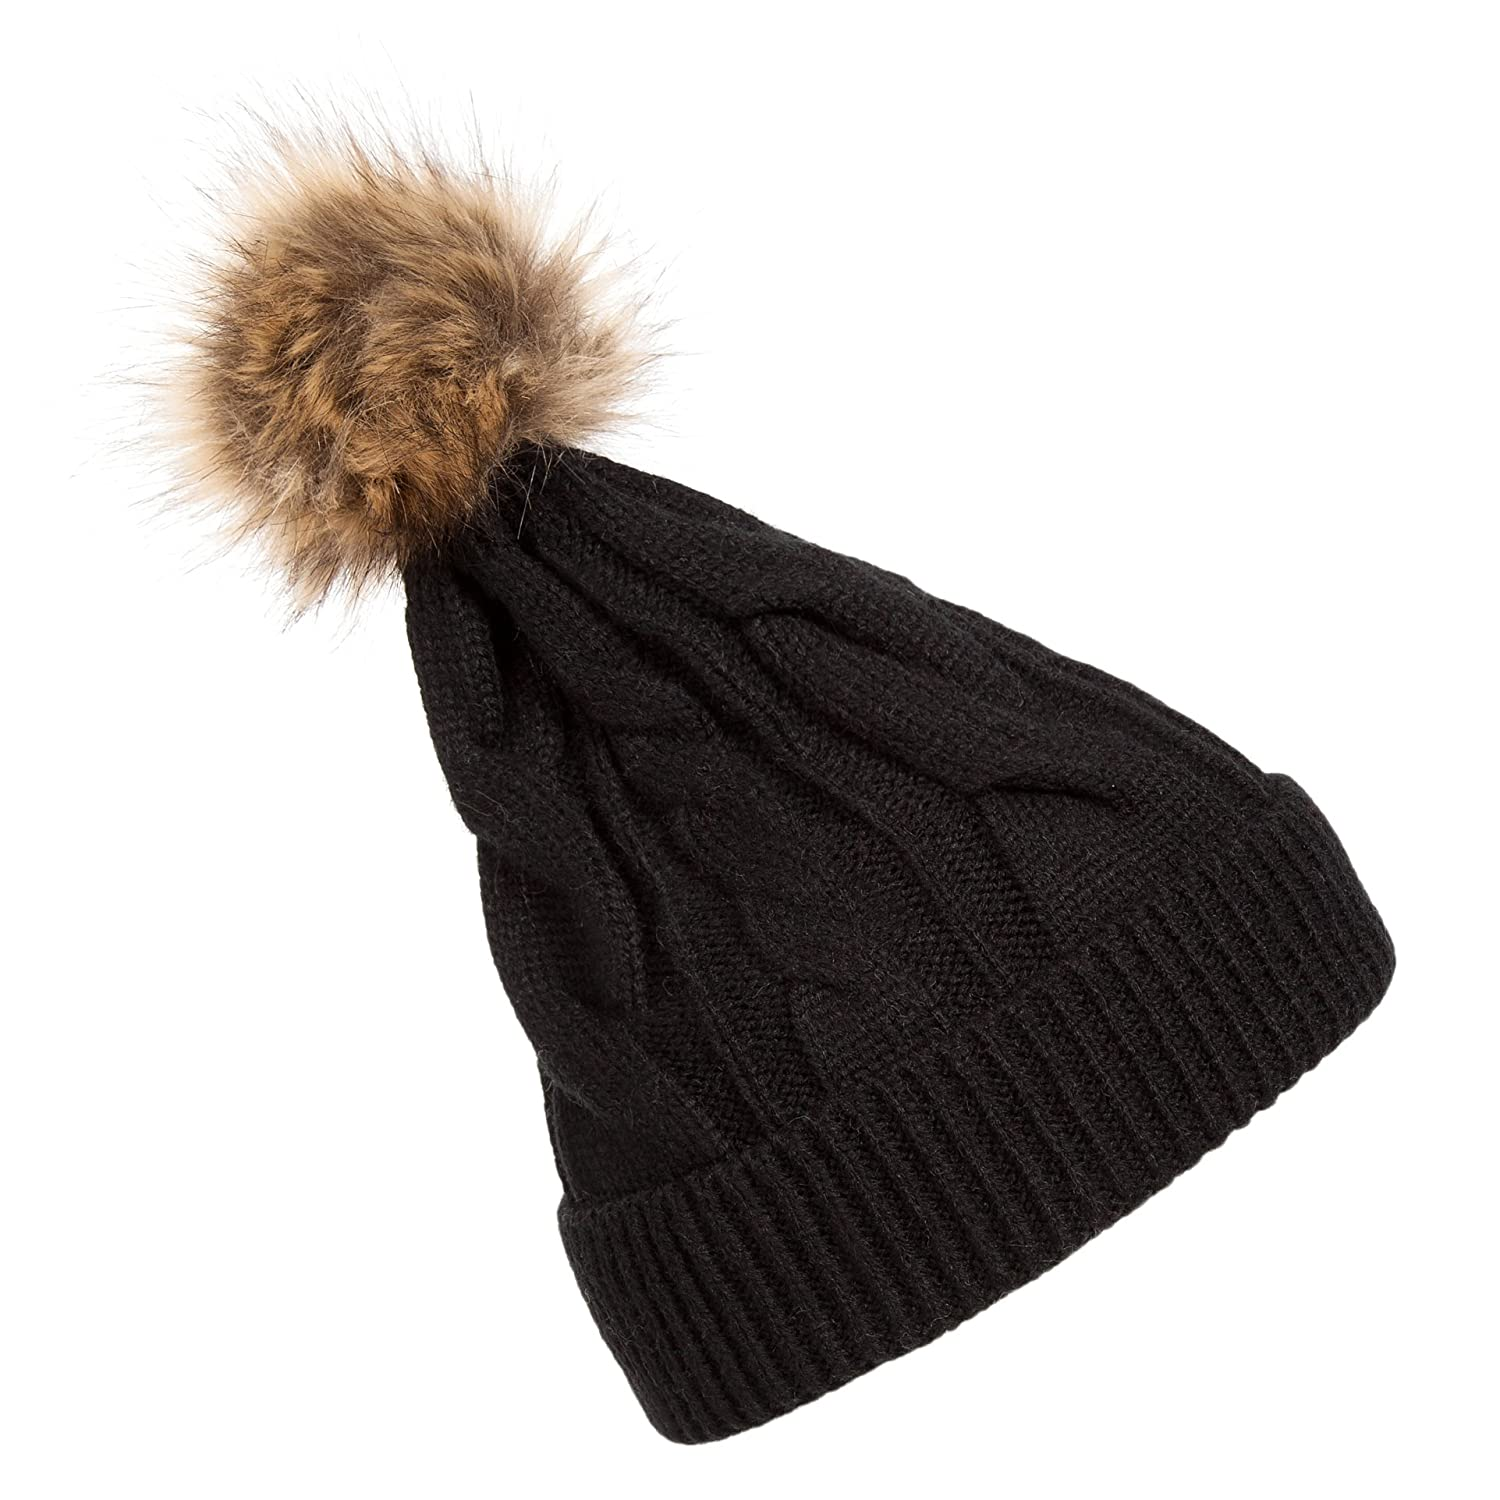 Jelinda Thick Cable Knit Weave Beanie Hat with Fur Pompom Beanie for Women